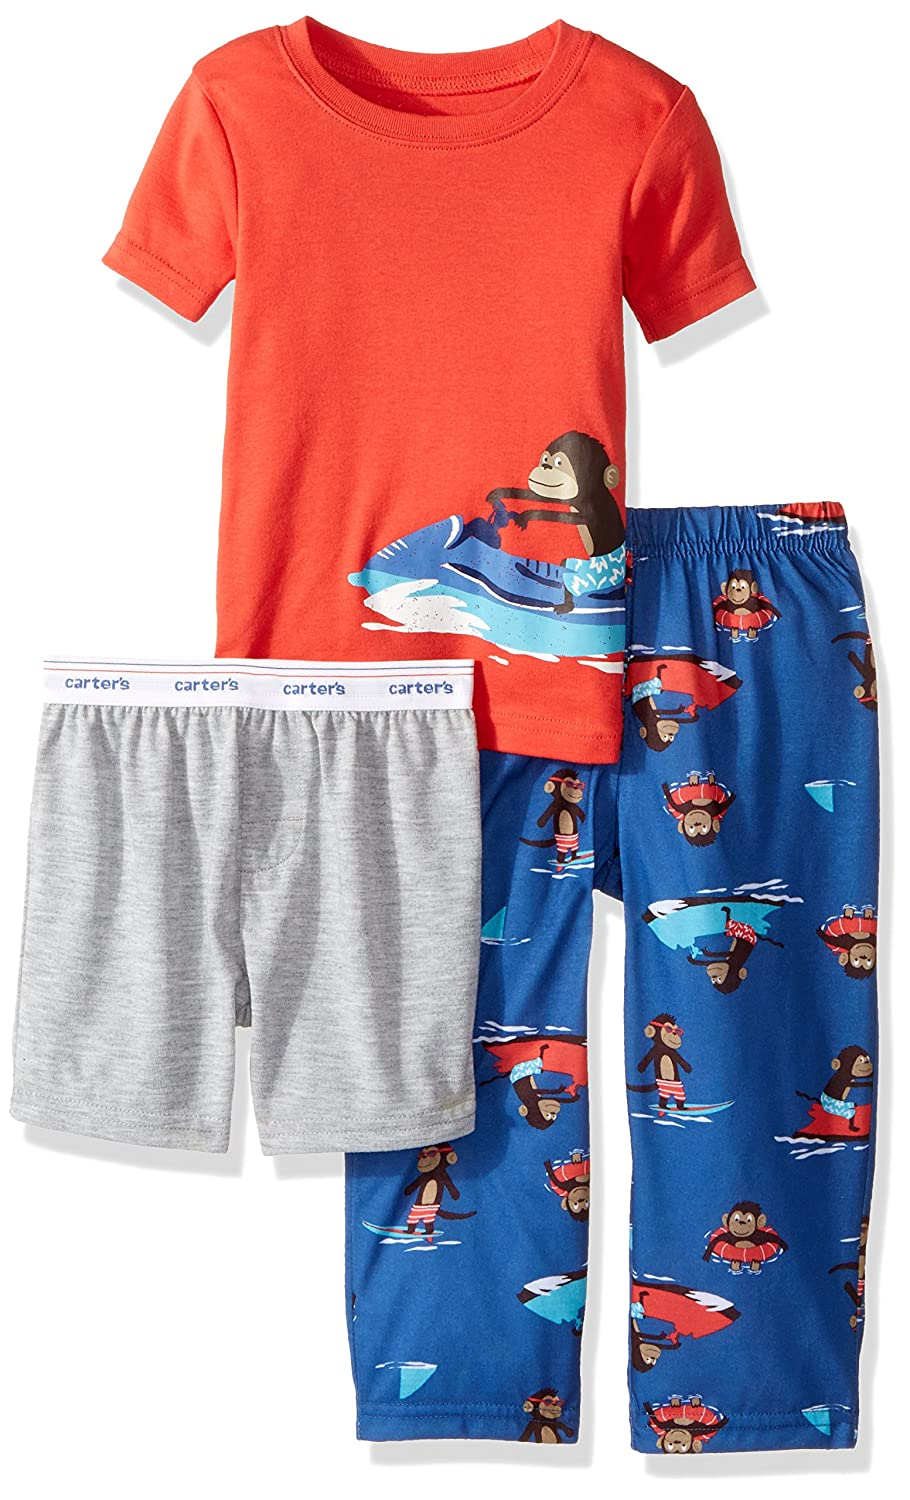 8dea8378d Amazon.com  Carter s Little Boys  3-Piece Pajama Set  Clothing